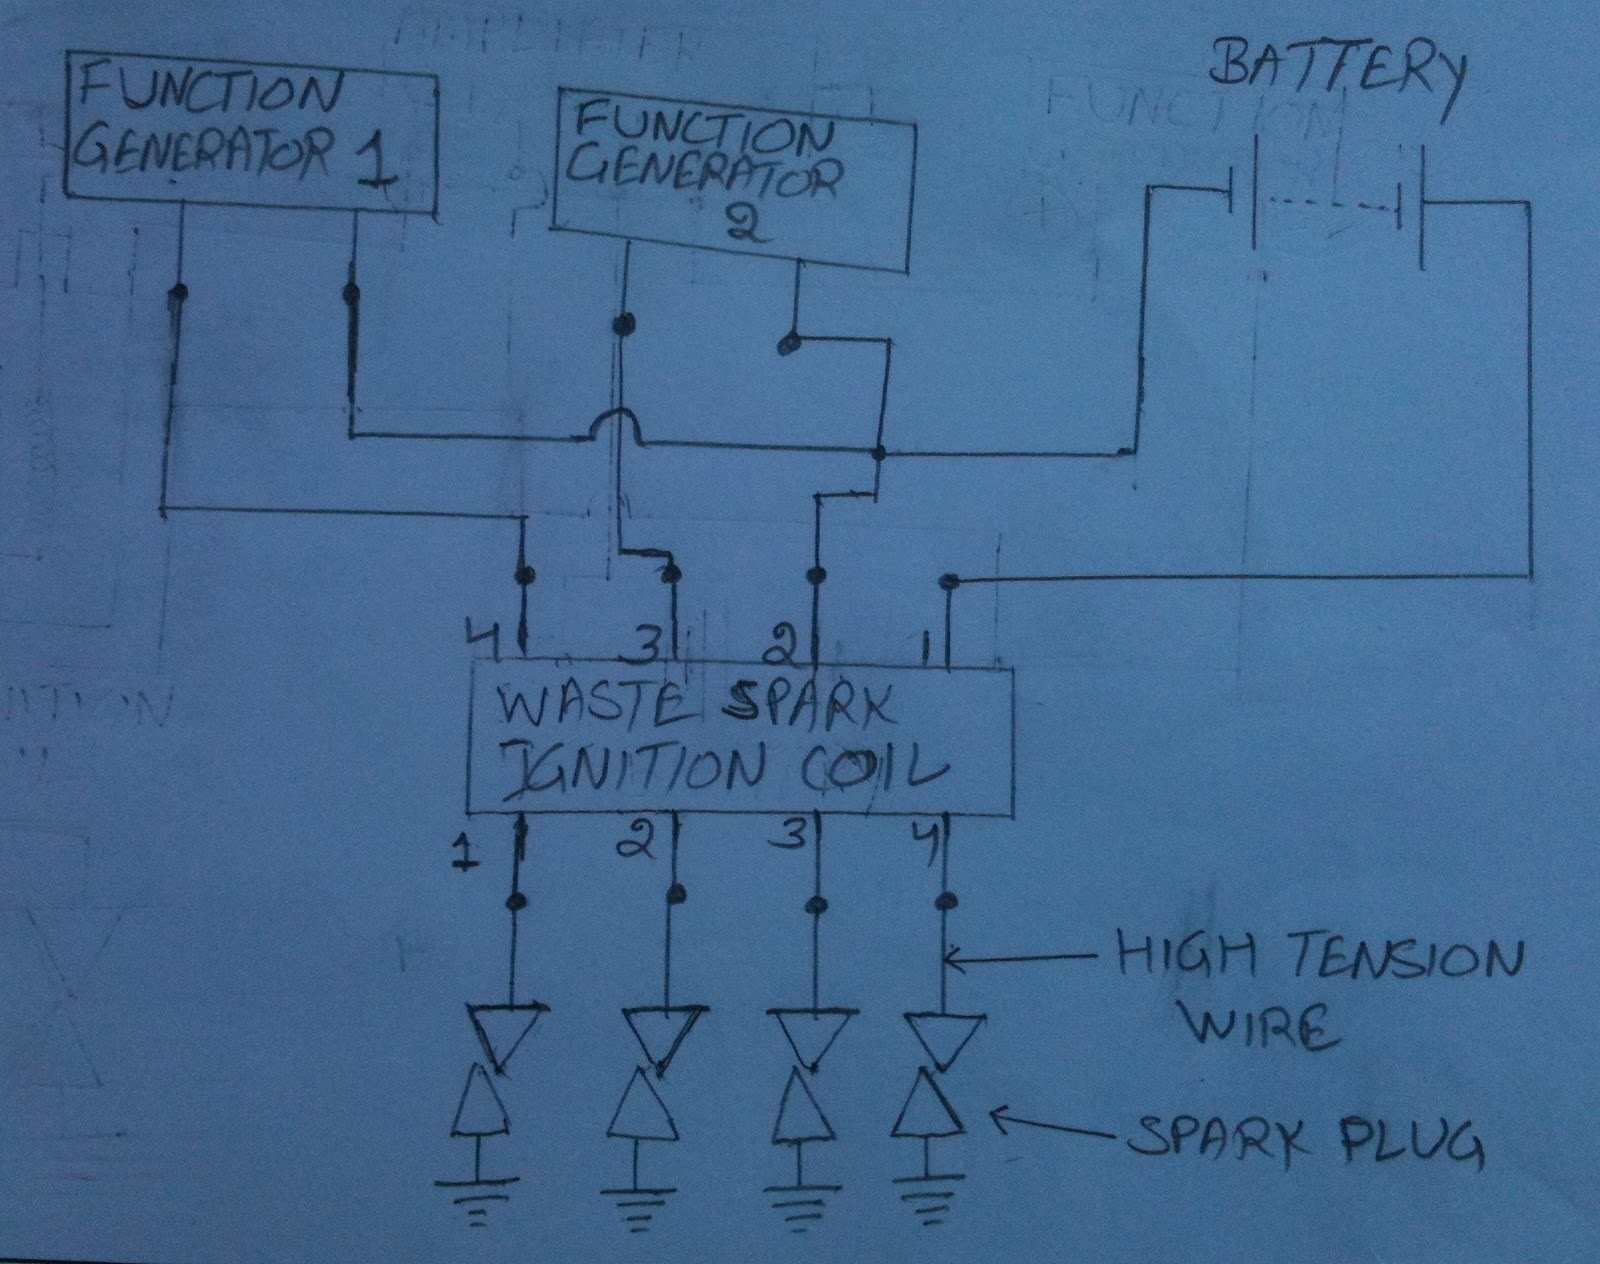 Waste Spark Coil Wiring Diagram Library 1991 350sdl Engine Draw A Of How You Wired The Circuit Wire Up Over